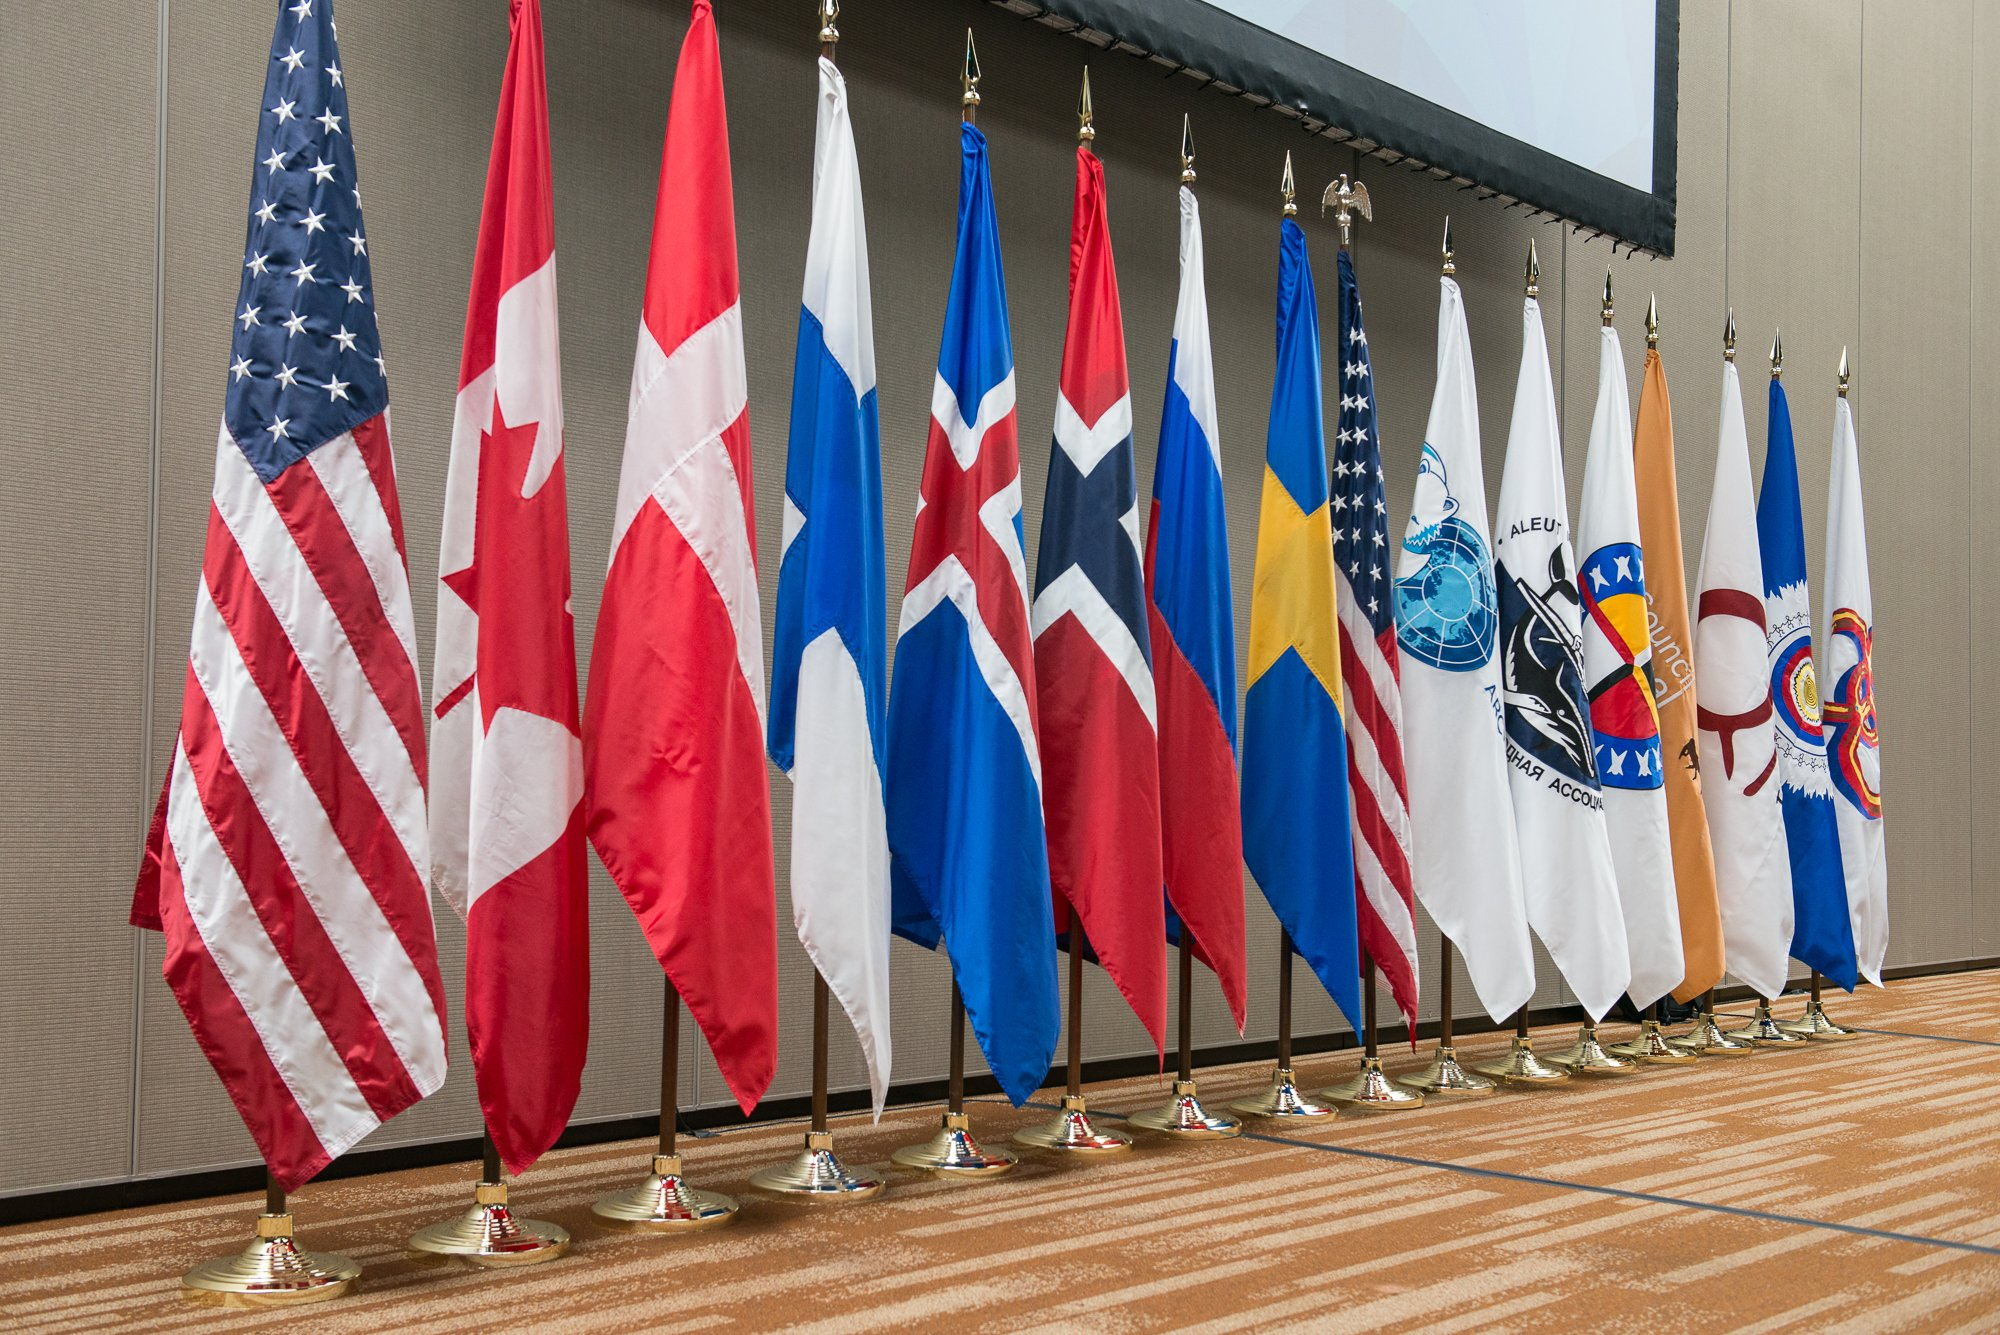 The flags of the eight Arctic Council Member States and six indigenous Permanent Participant organizations, at the first SAO meeting during the United States' 2015-2017 Chairmanship held in Anchorage, Alaska Oct. 20-22. (Arctic Council Secretariat / Linnea Nordström)